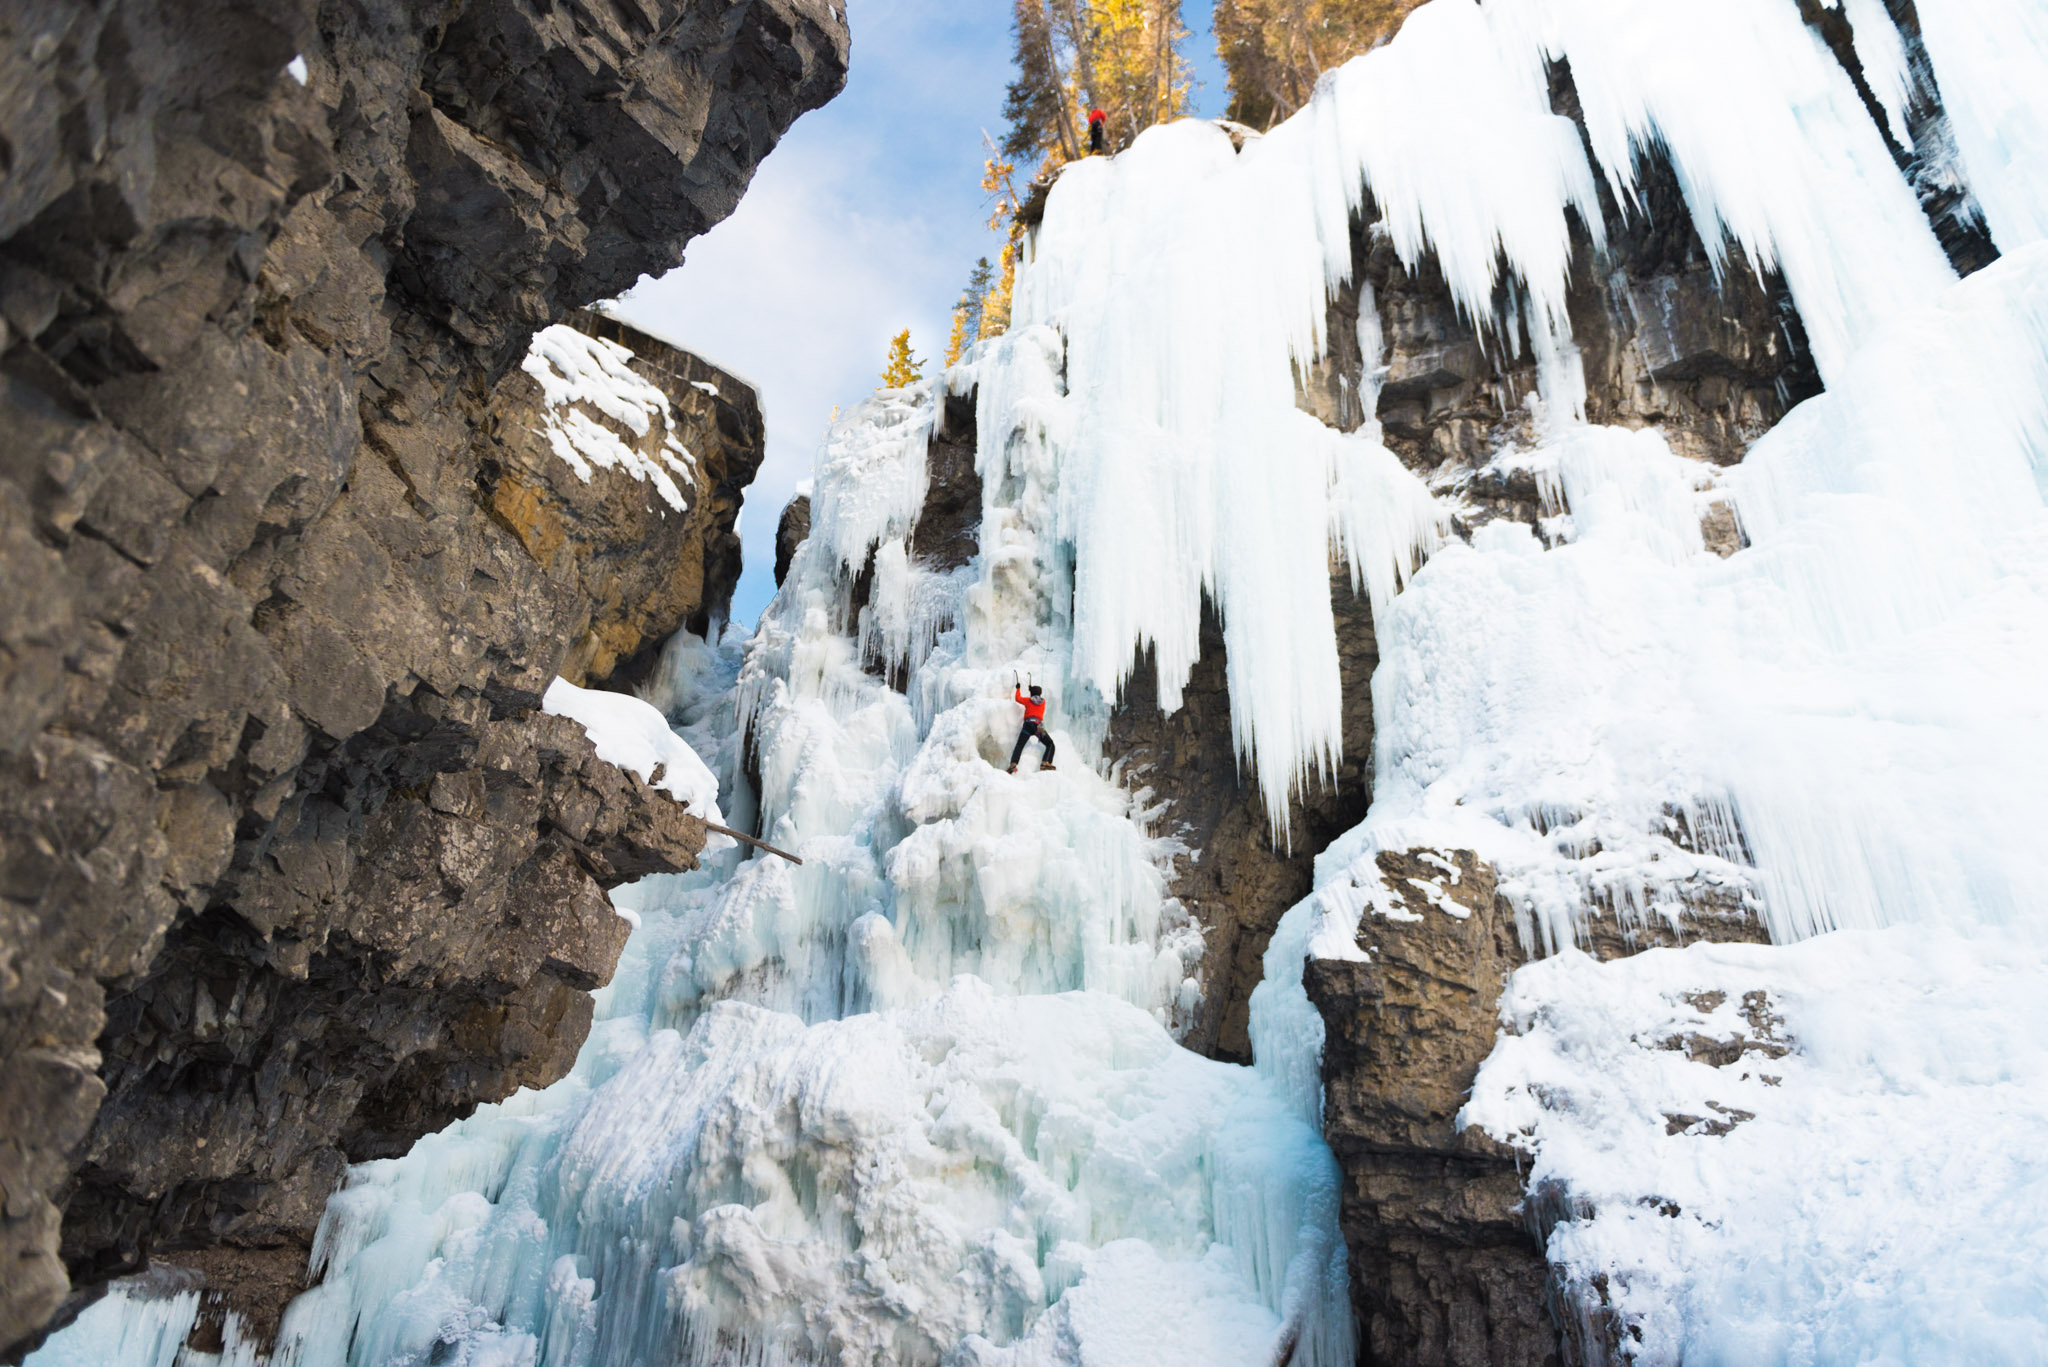 Chelsea Czibere - January 25, 2019 - Johnston Canyon-21.jpg